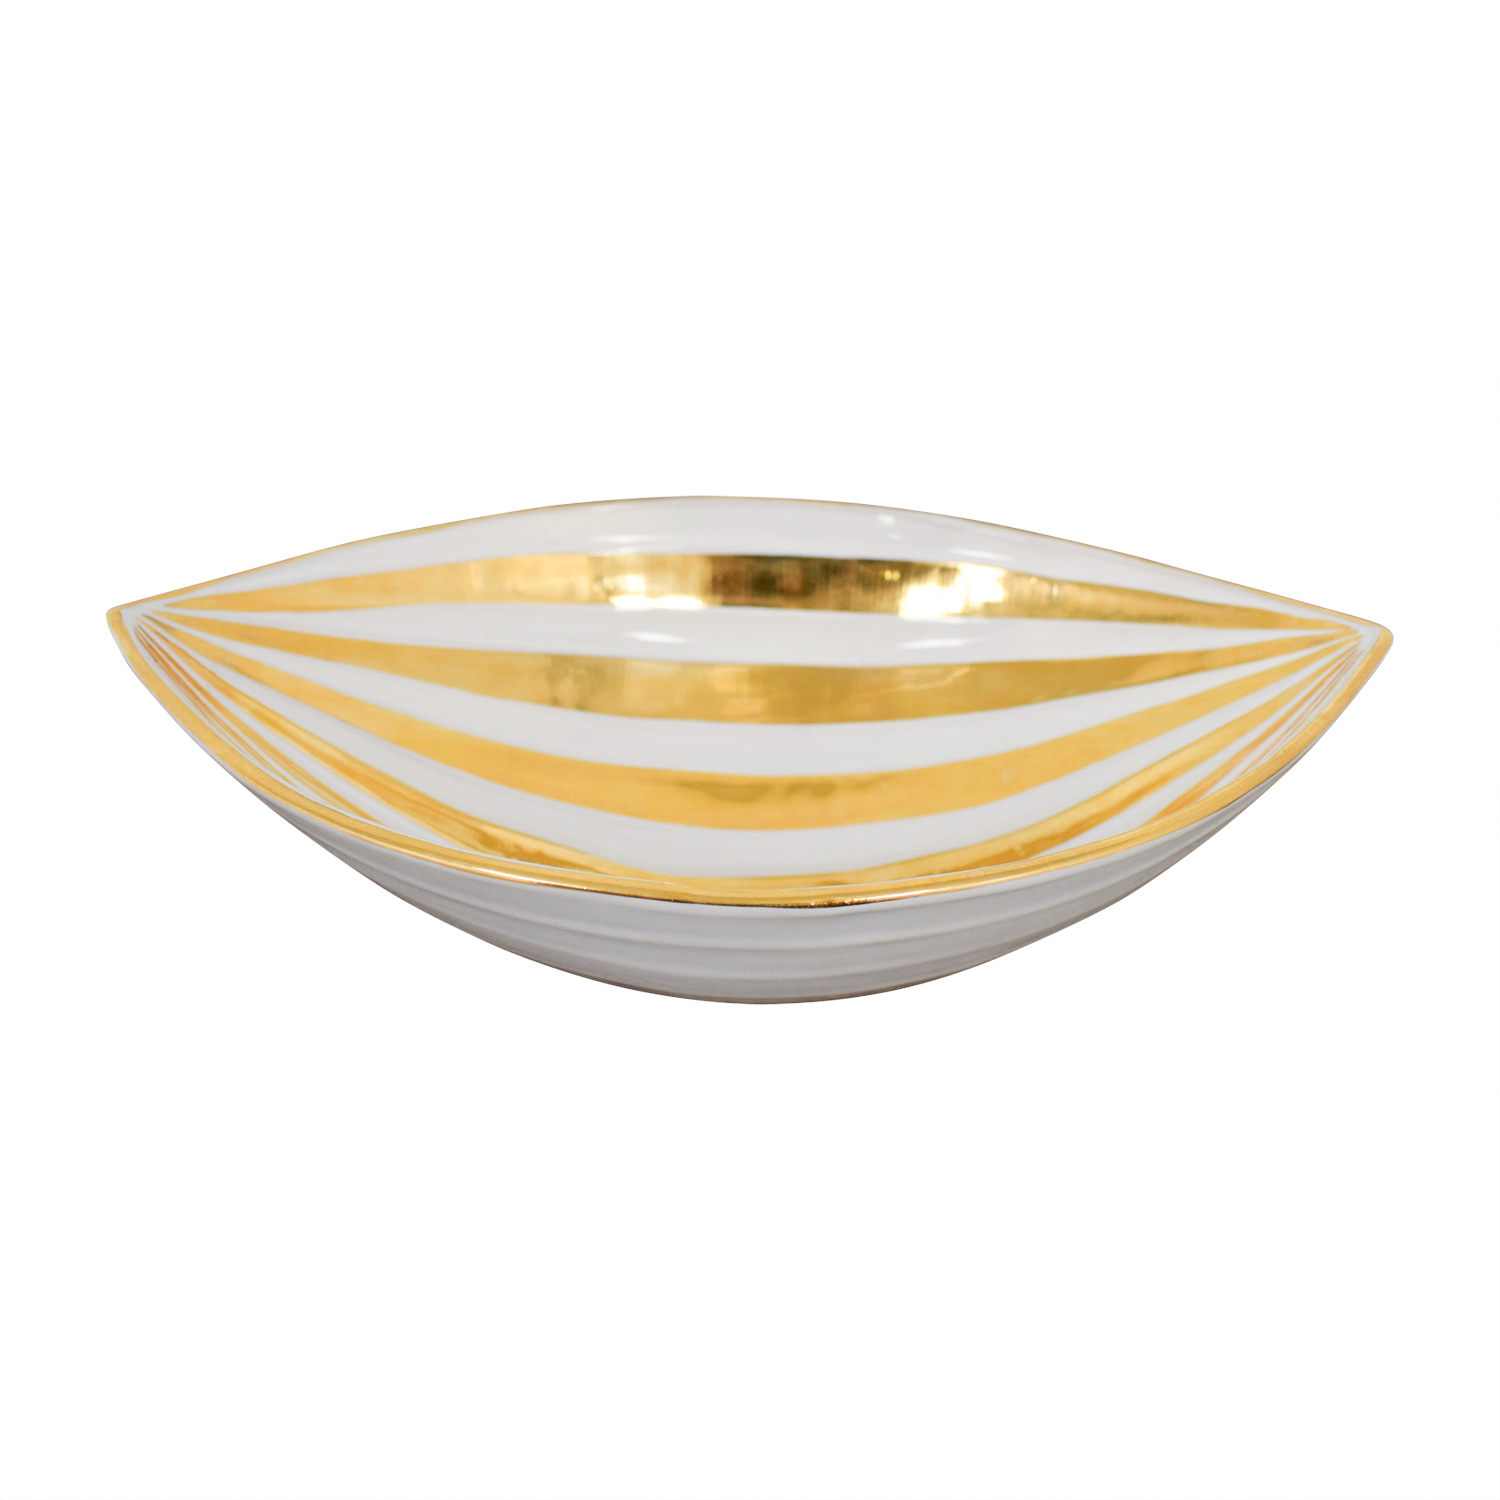 buy Jonathan Adler Gold and White Glazed Ceramic Bowl Jonathan Adler Decorative Accents